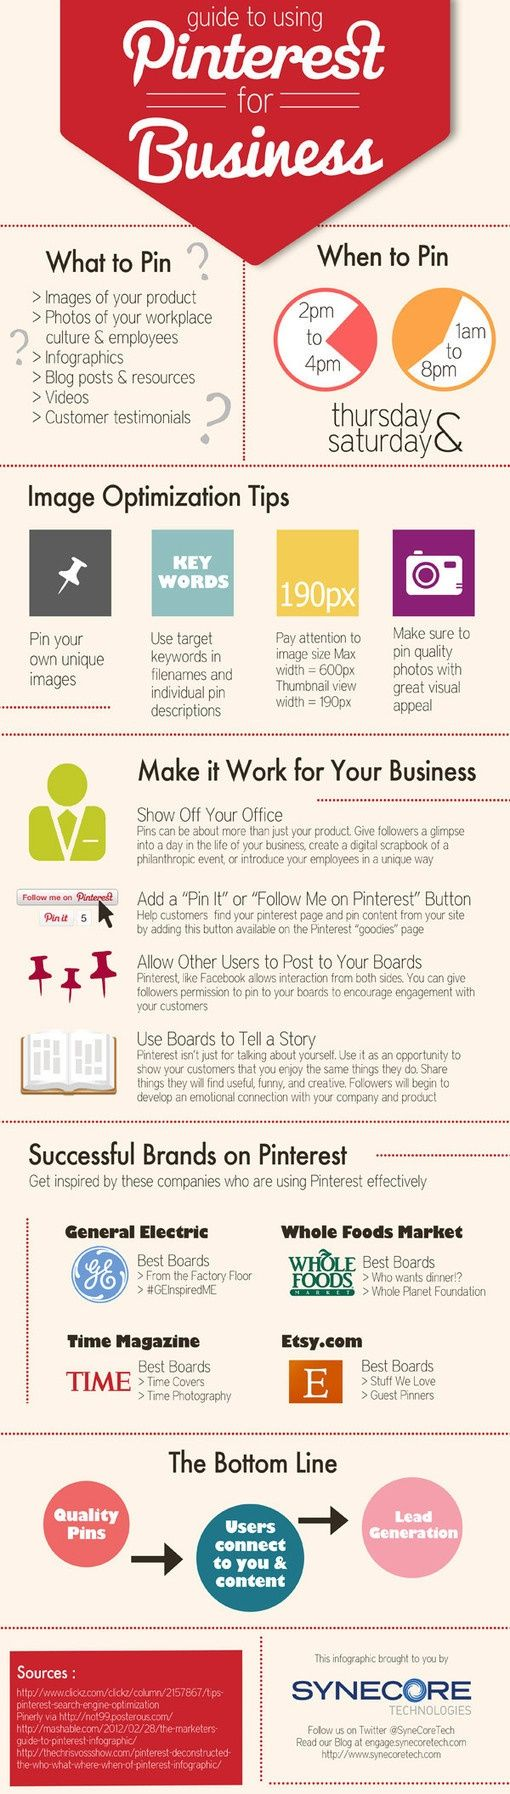 Guide to Using Pinterest for Business - Infographic